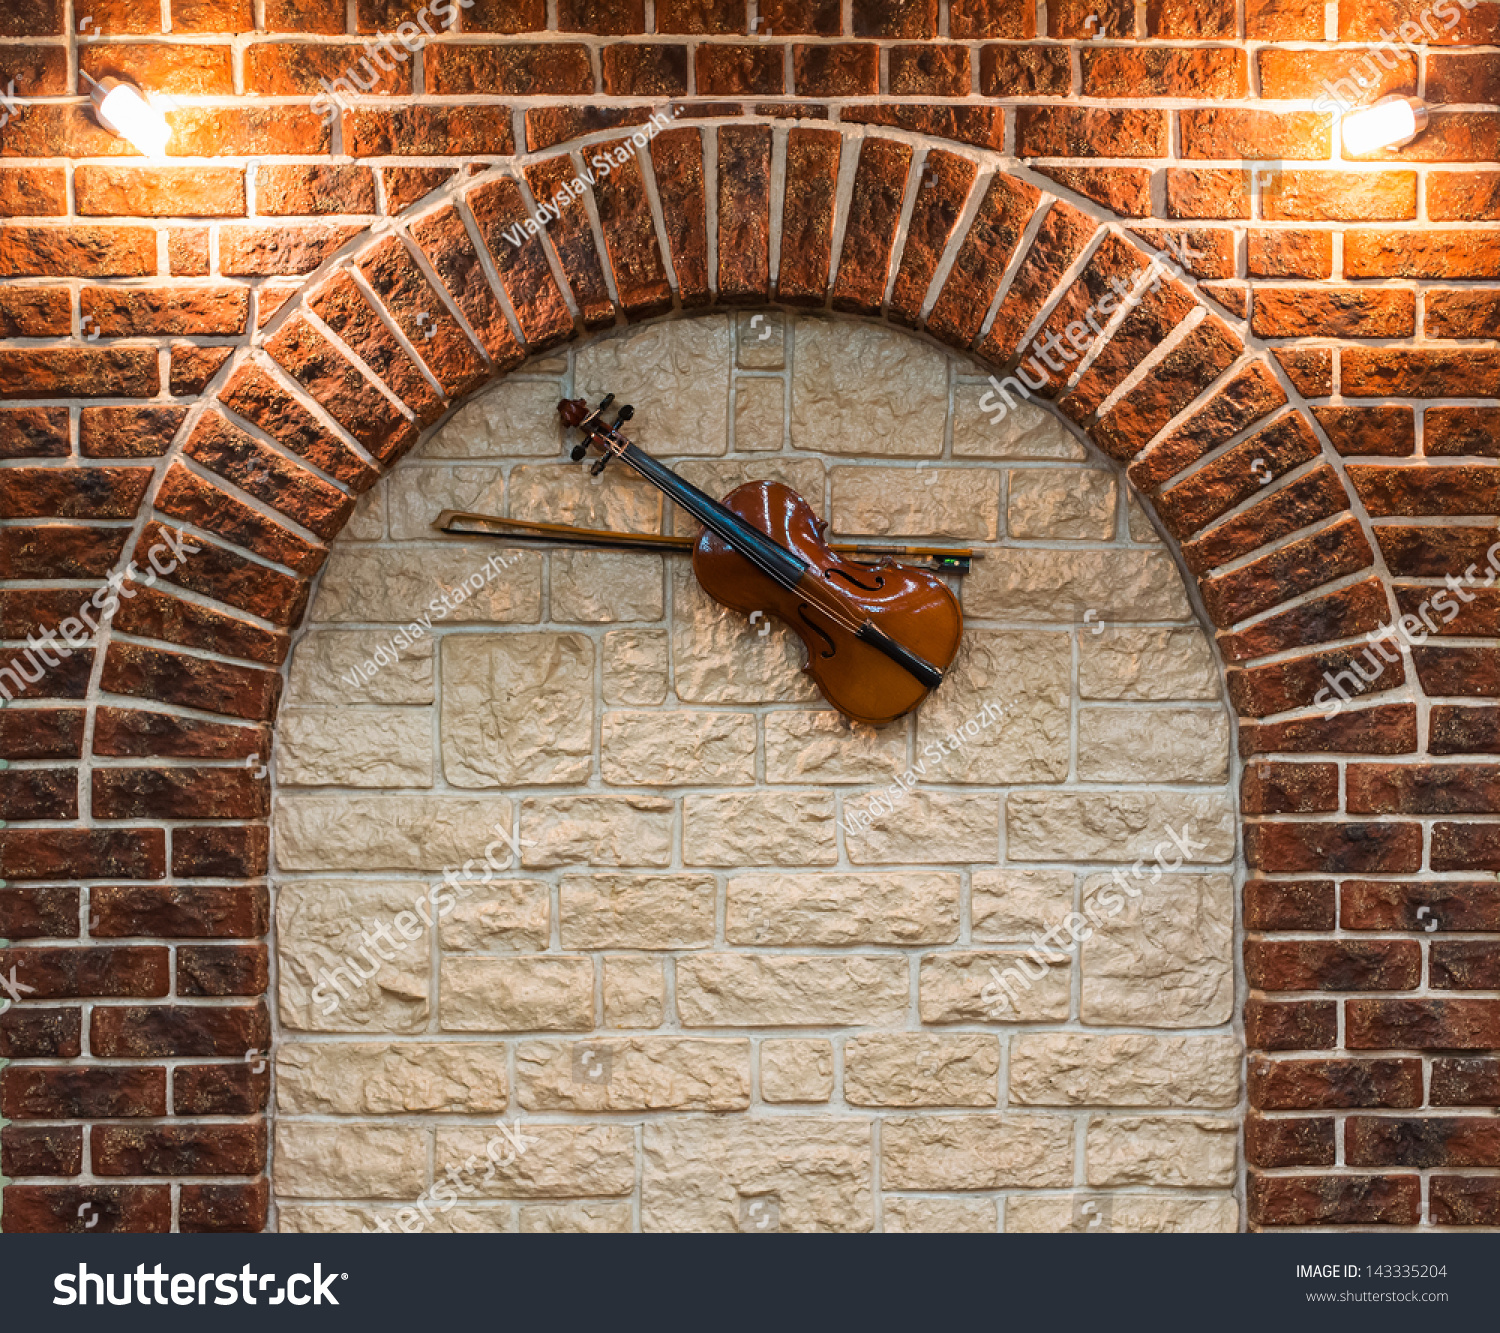 Element of the interior stone arch with a violin on a wall for Interior wall arches